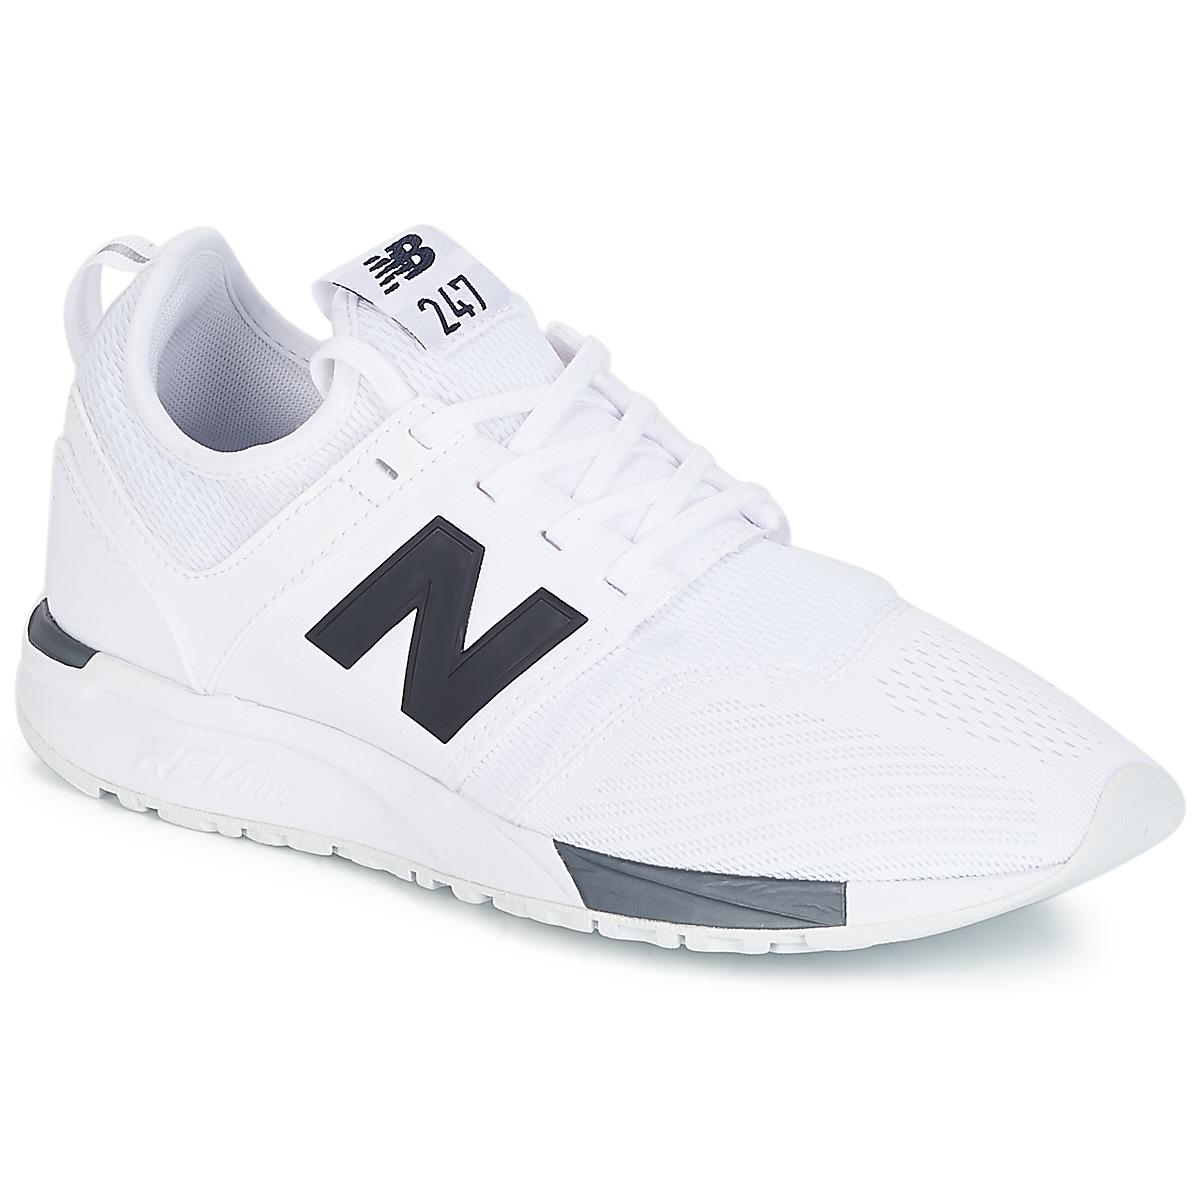 New Balance MRL247 women's Shoes (Trainers) in Discount Great Deals 2018 Newest Online Manchester Great Sale Enjoy Cheap Get To Buy zcb3M